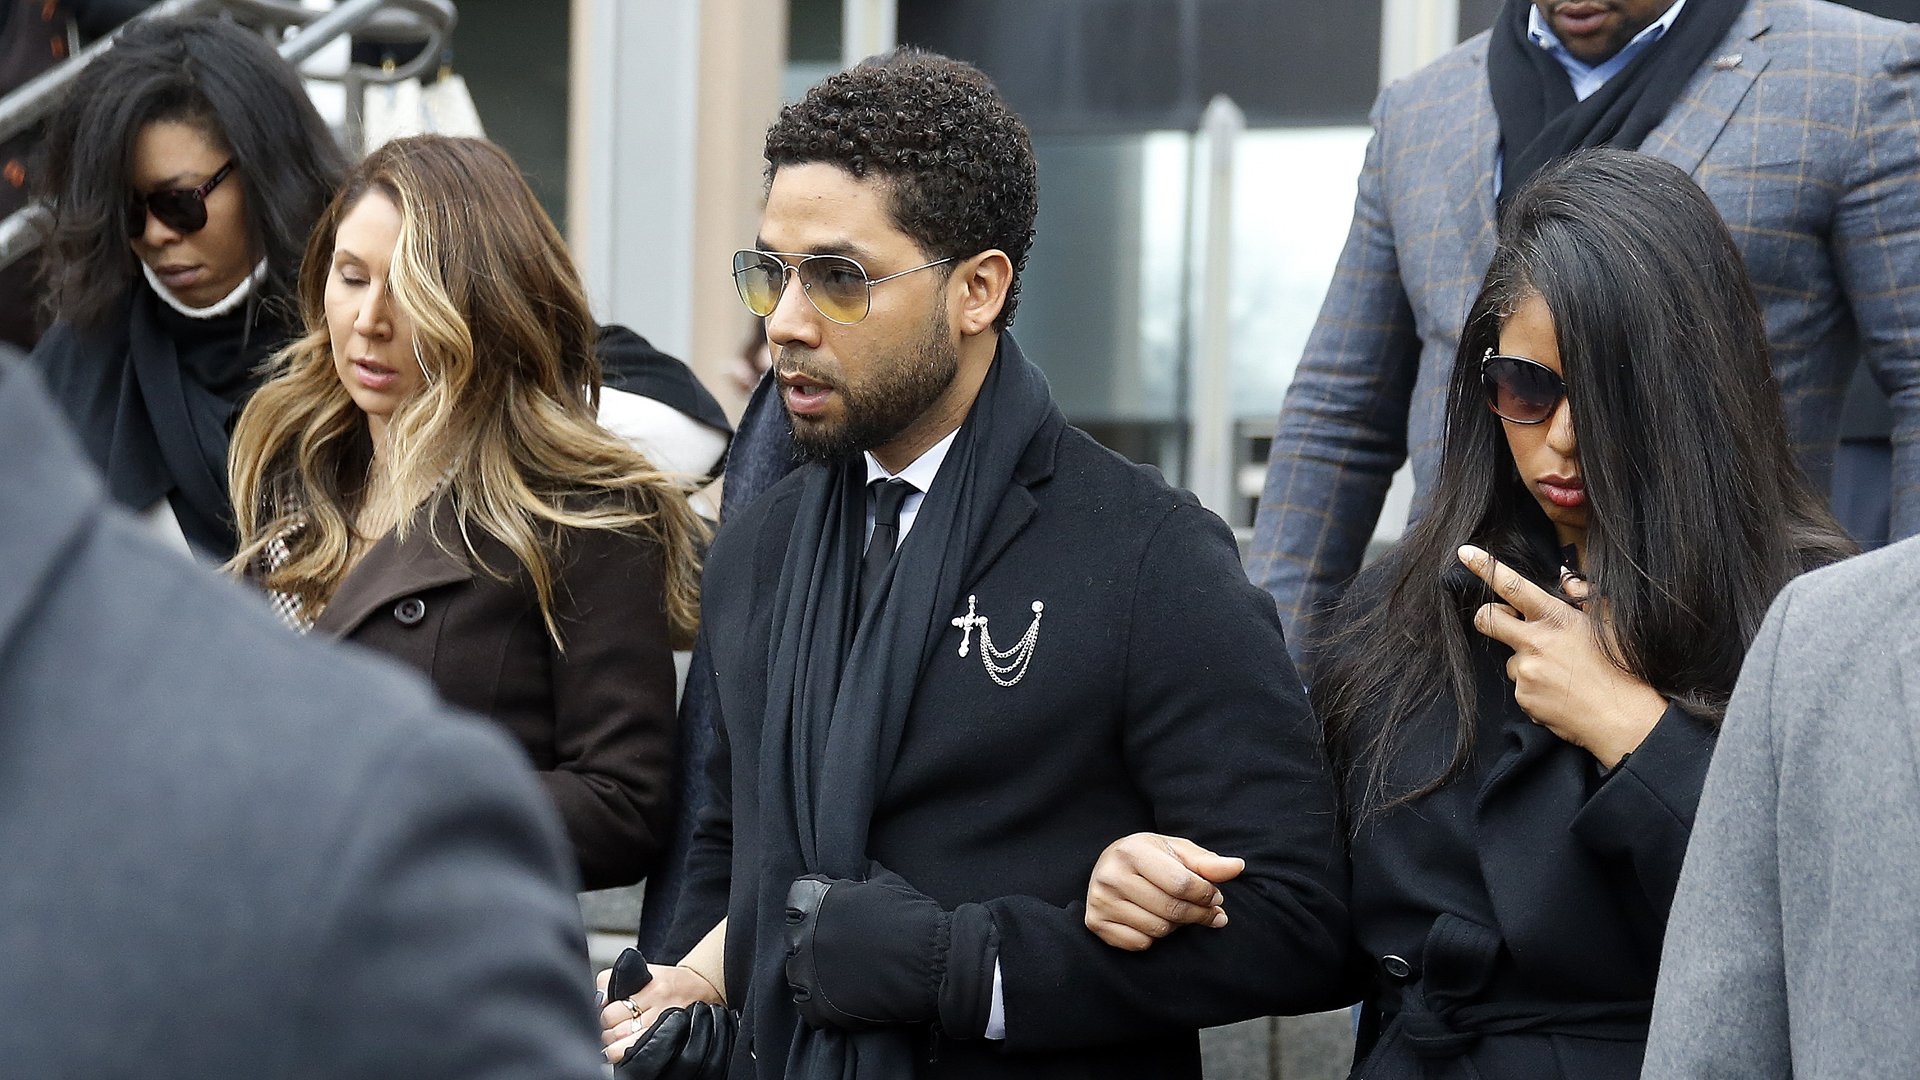 Flanked by attorneys and supporters, actor Jussie Smollett walks out of the Leighton Criminal Courthouse after pleading not guilty to a new indictment on Feb. 24, 2020 in Chicago. (Credit: Nuccio DiNuzzo/Getty Images)